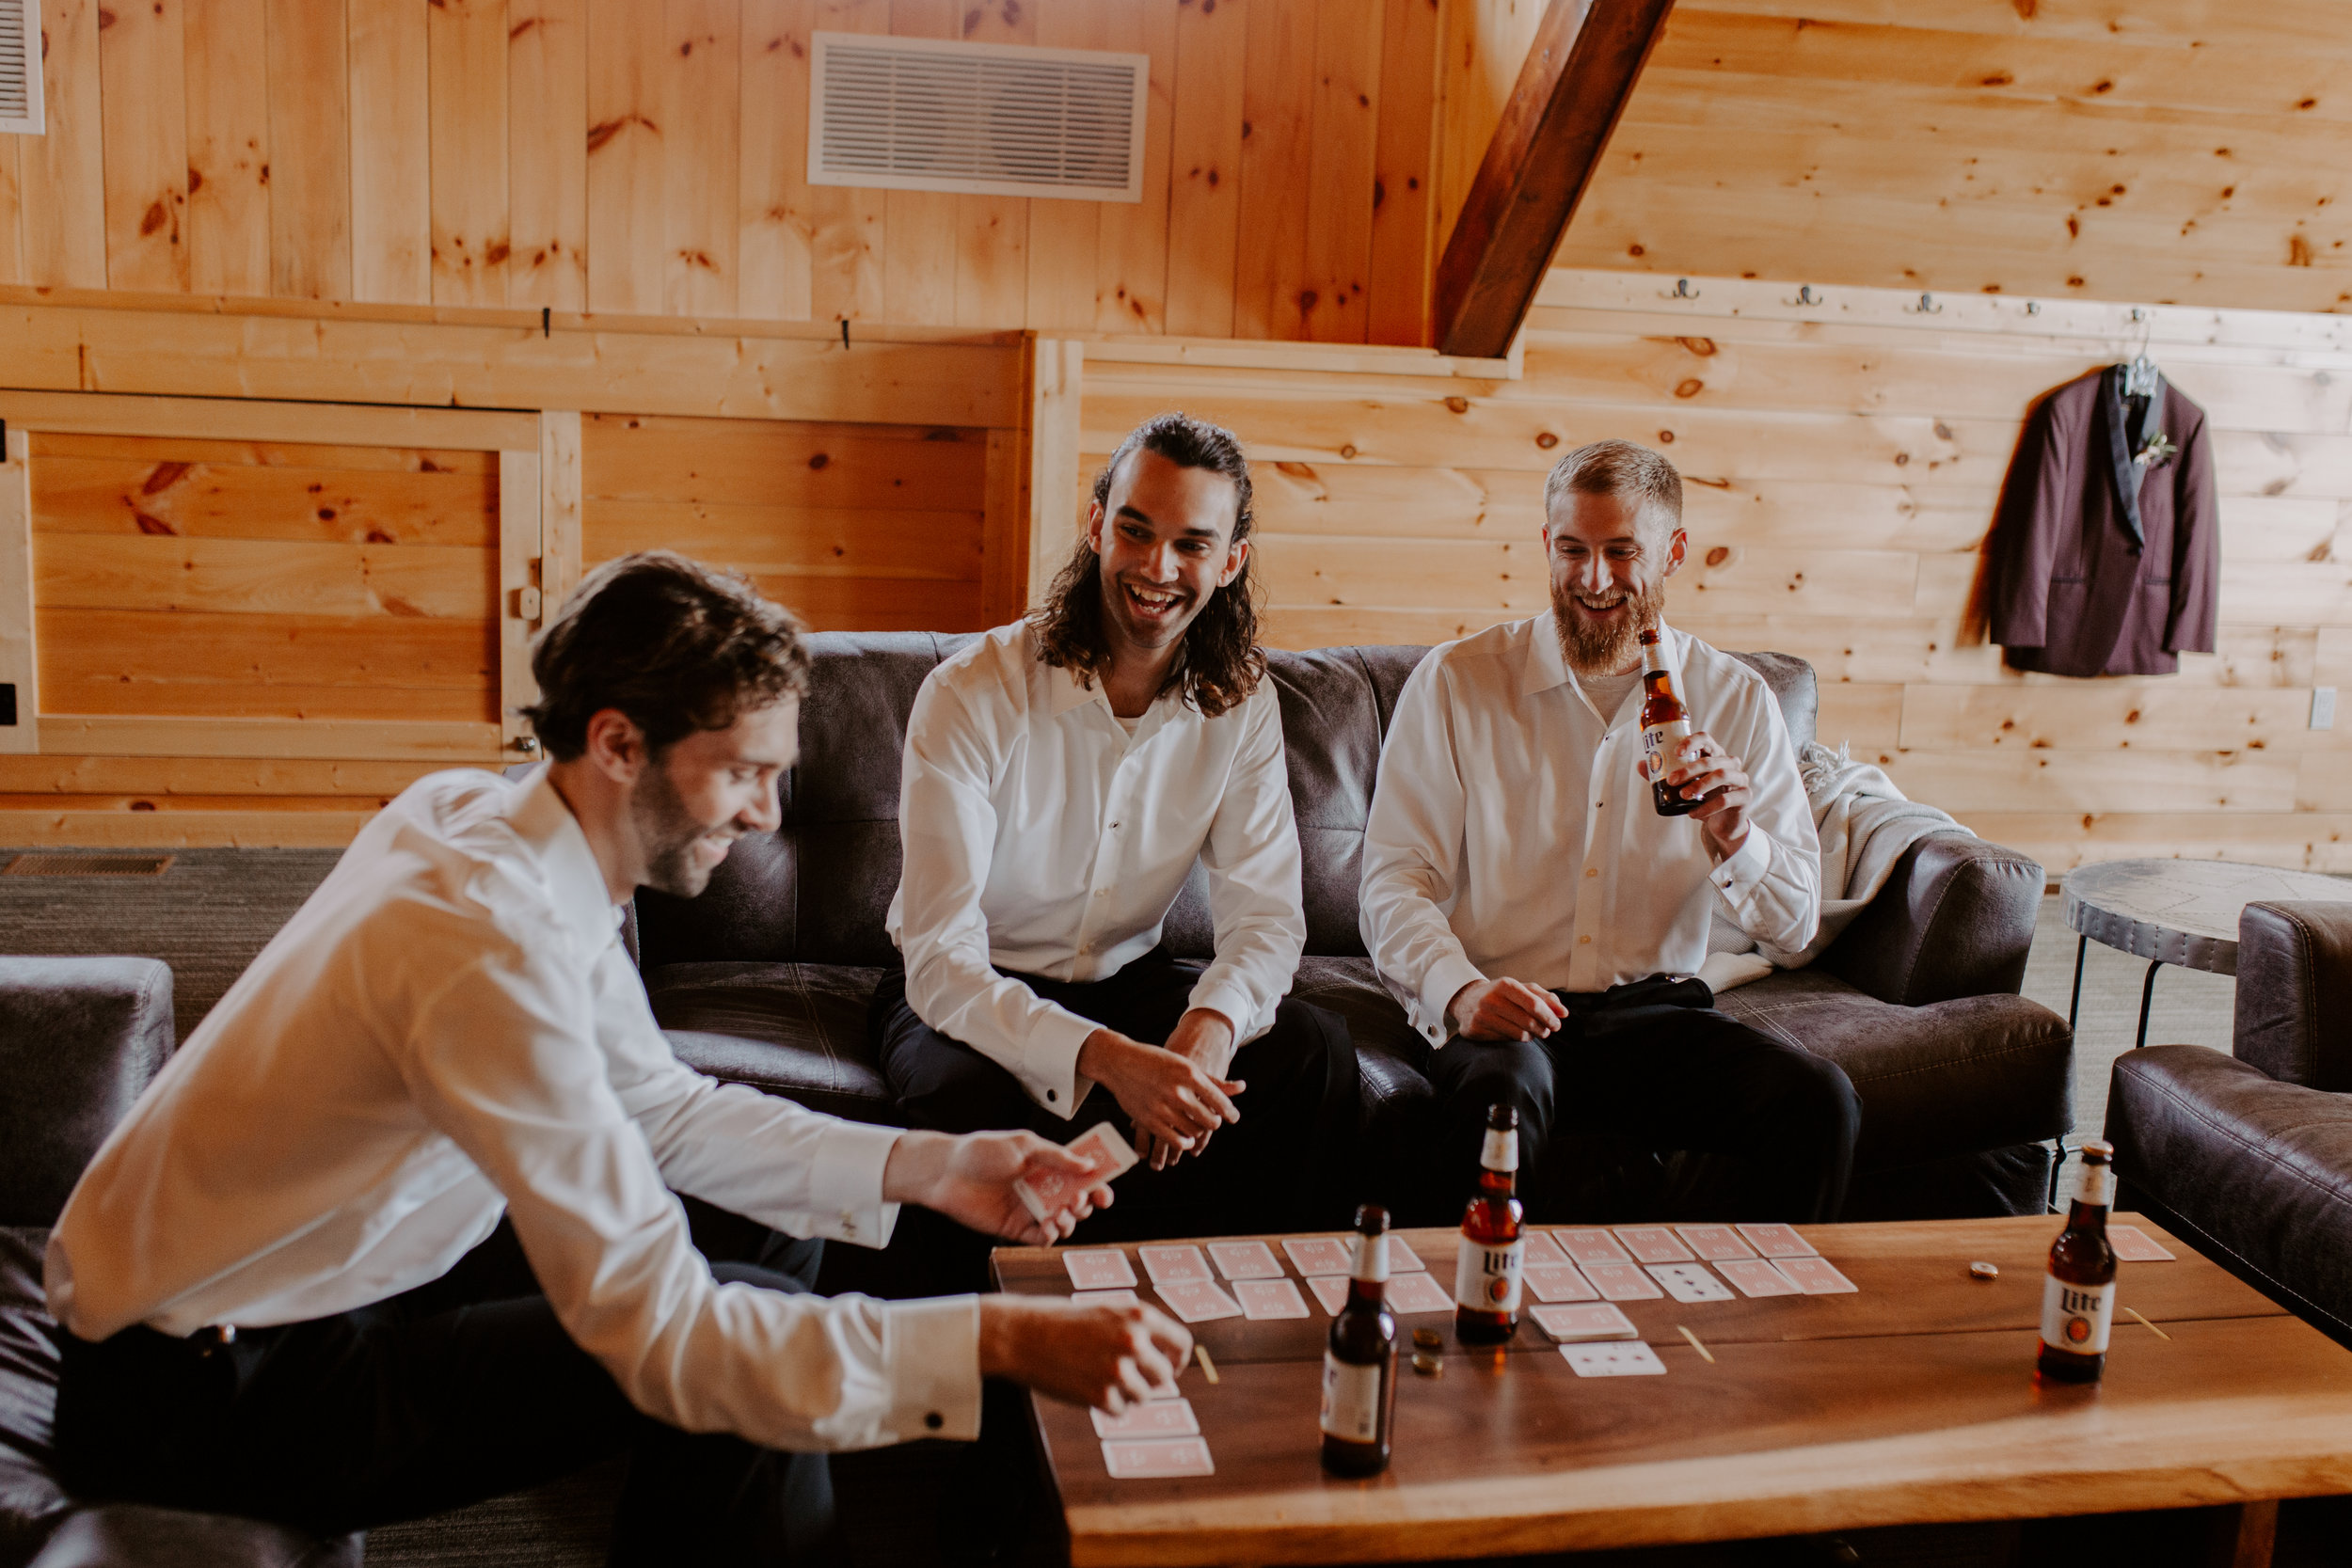 Groomsmen play cards and enjoy a beer while relaxing in their own area for getting ready at Country Lane Lodge in Adel Iowa. They are wearing white shirts and sitting on a leather couch, smiling and having fun while they wait for the wedding ceremony to start